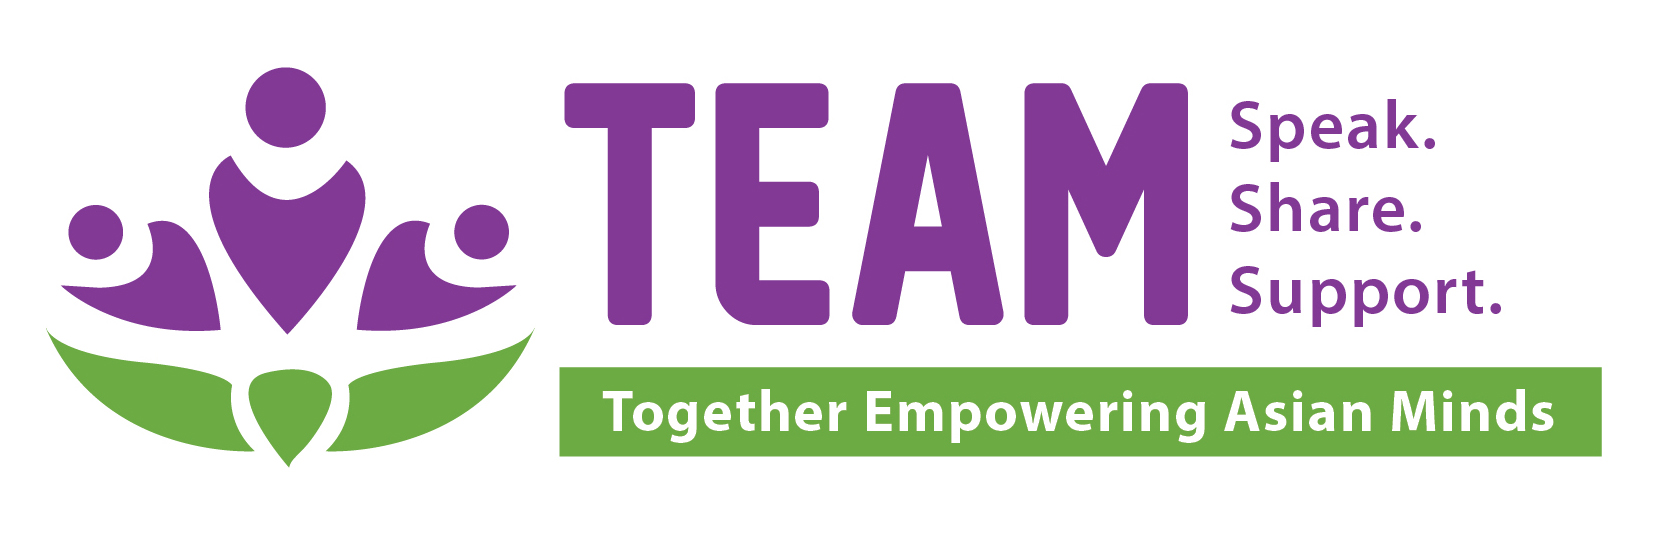 Together Empowering Asian Minds (TEAM) National Kickoff [09/20/16]